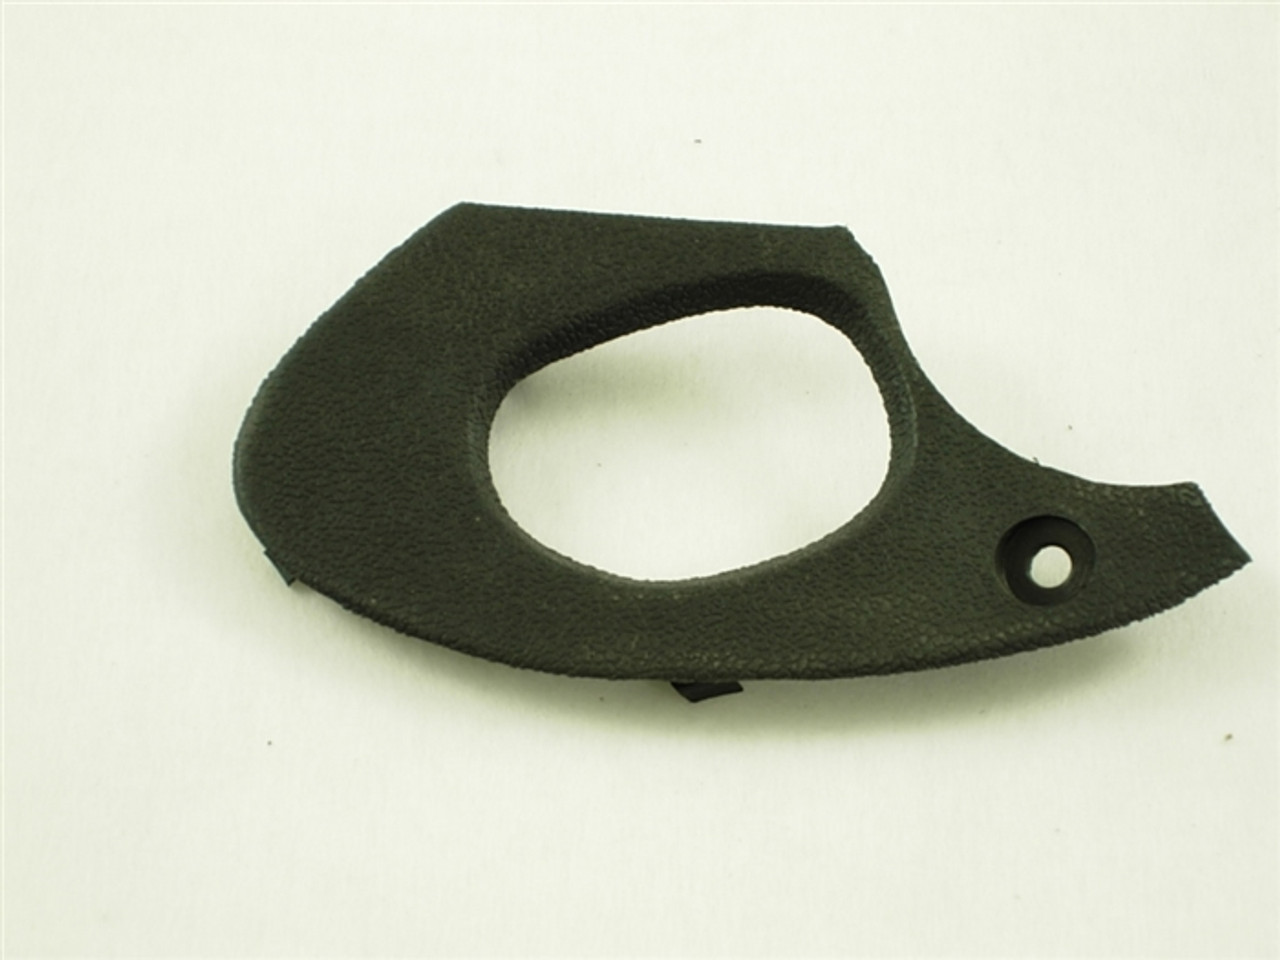 BRAKE HANDLE TRIM (RIGHT SIDE) 11713-A96-3